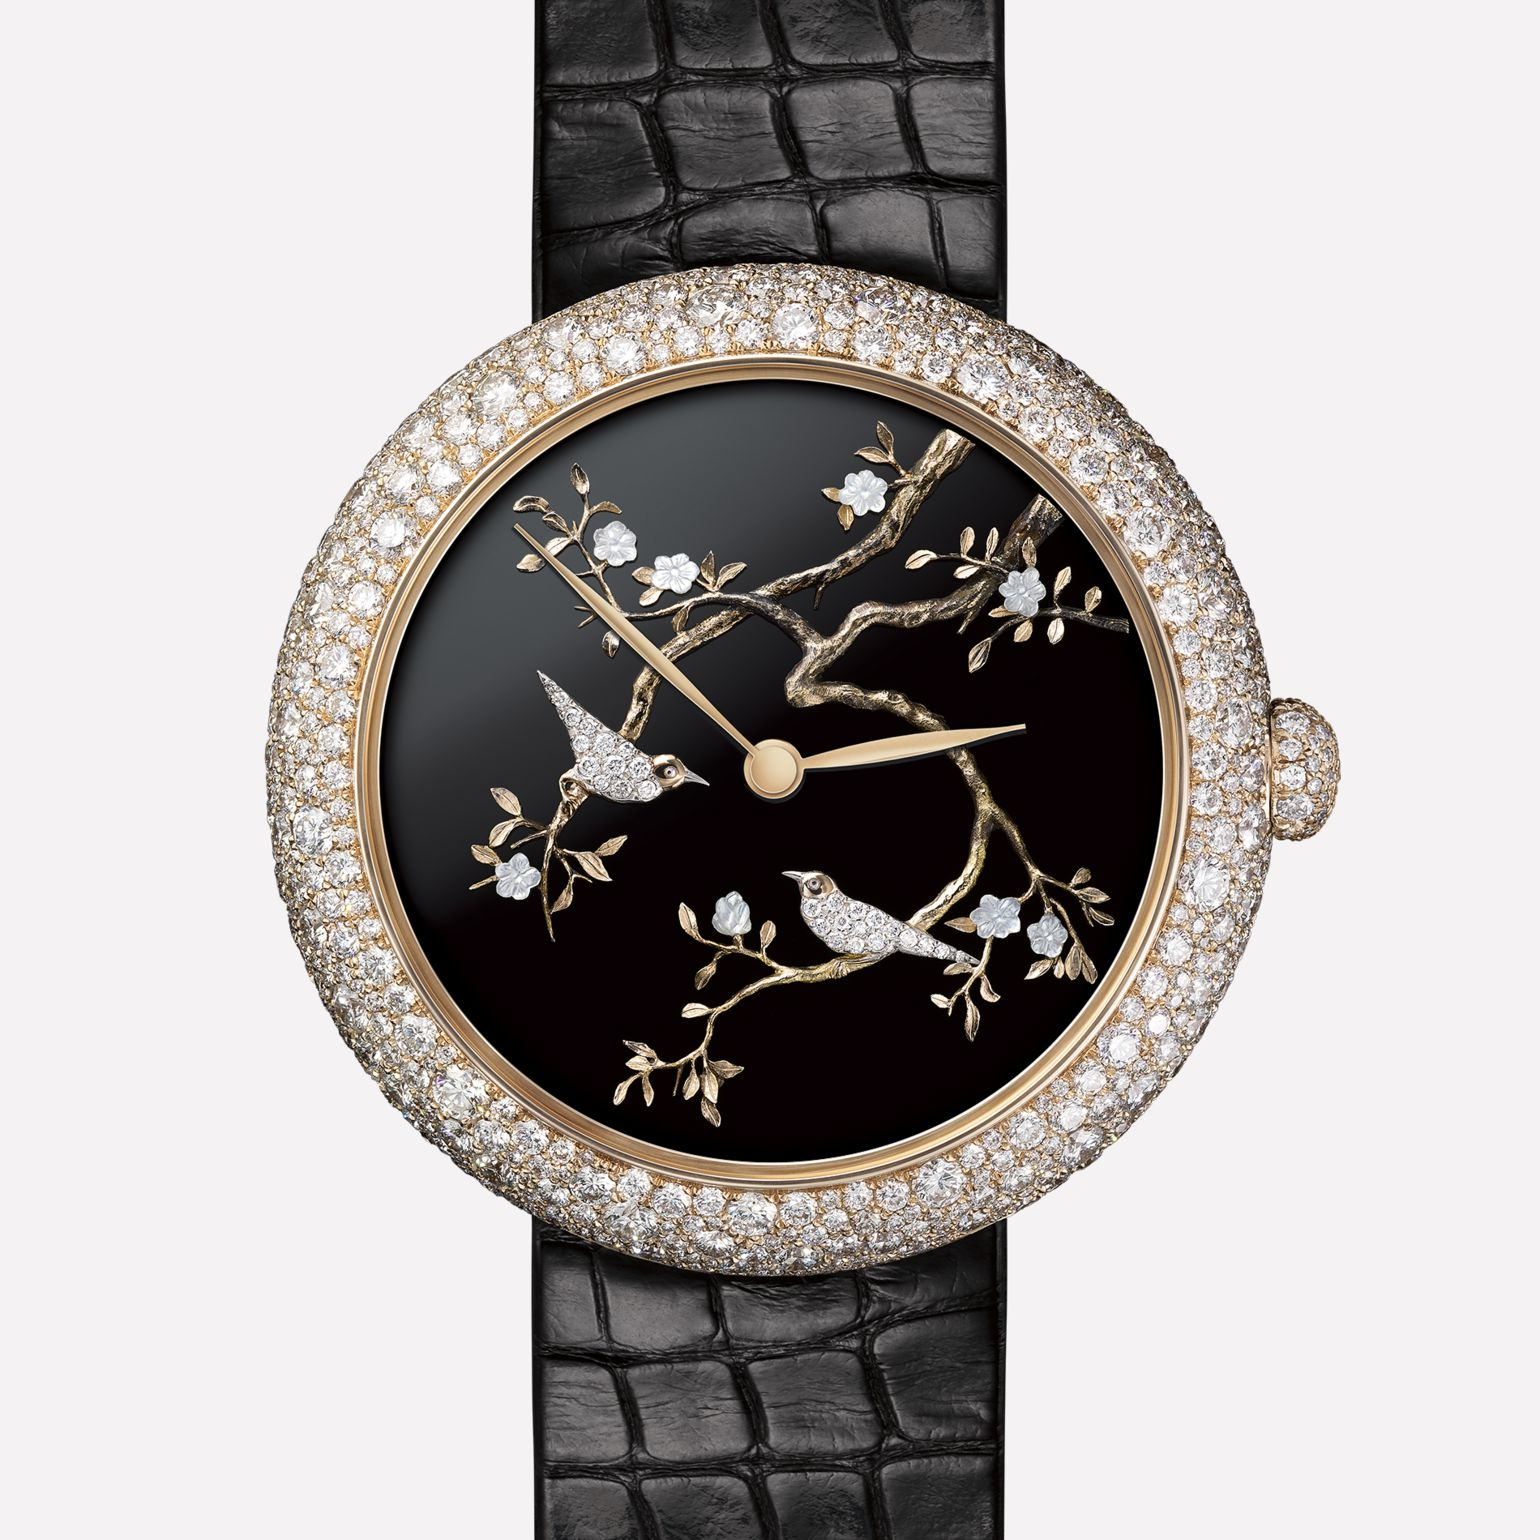 Mademoiselle Privé Watch Coromandel Flying Bird created using the sculpted gold technique